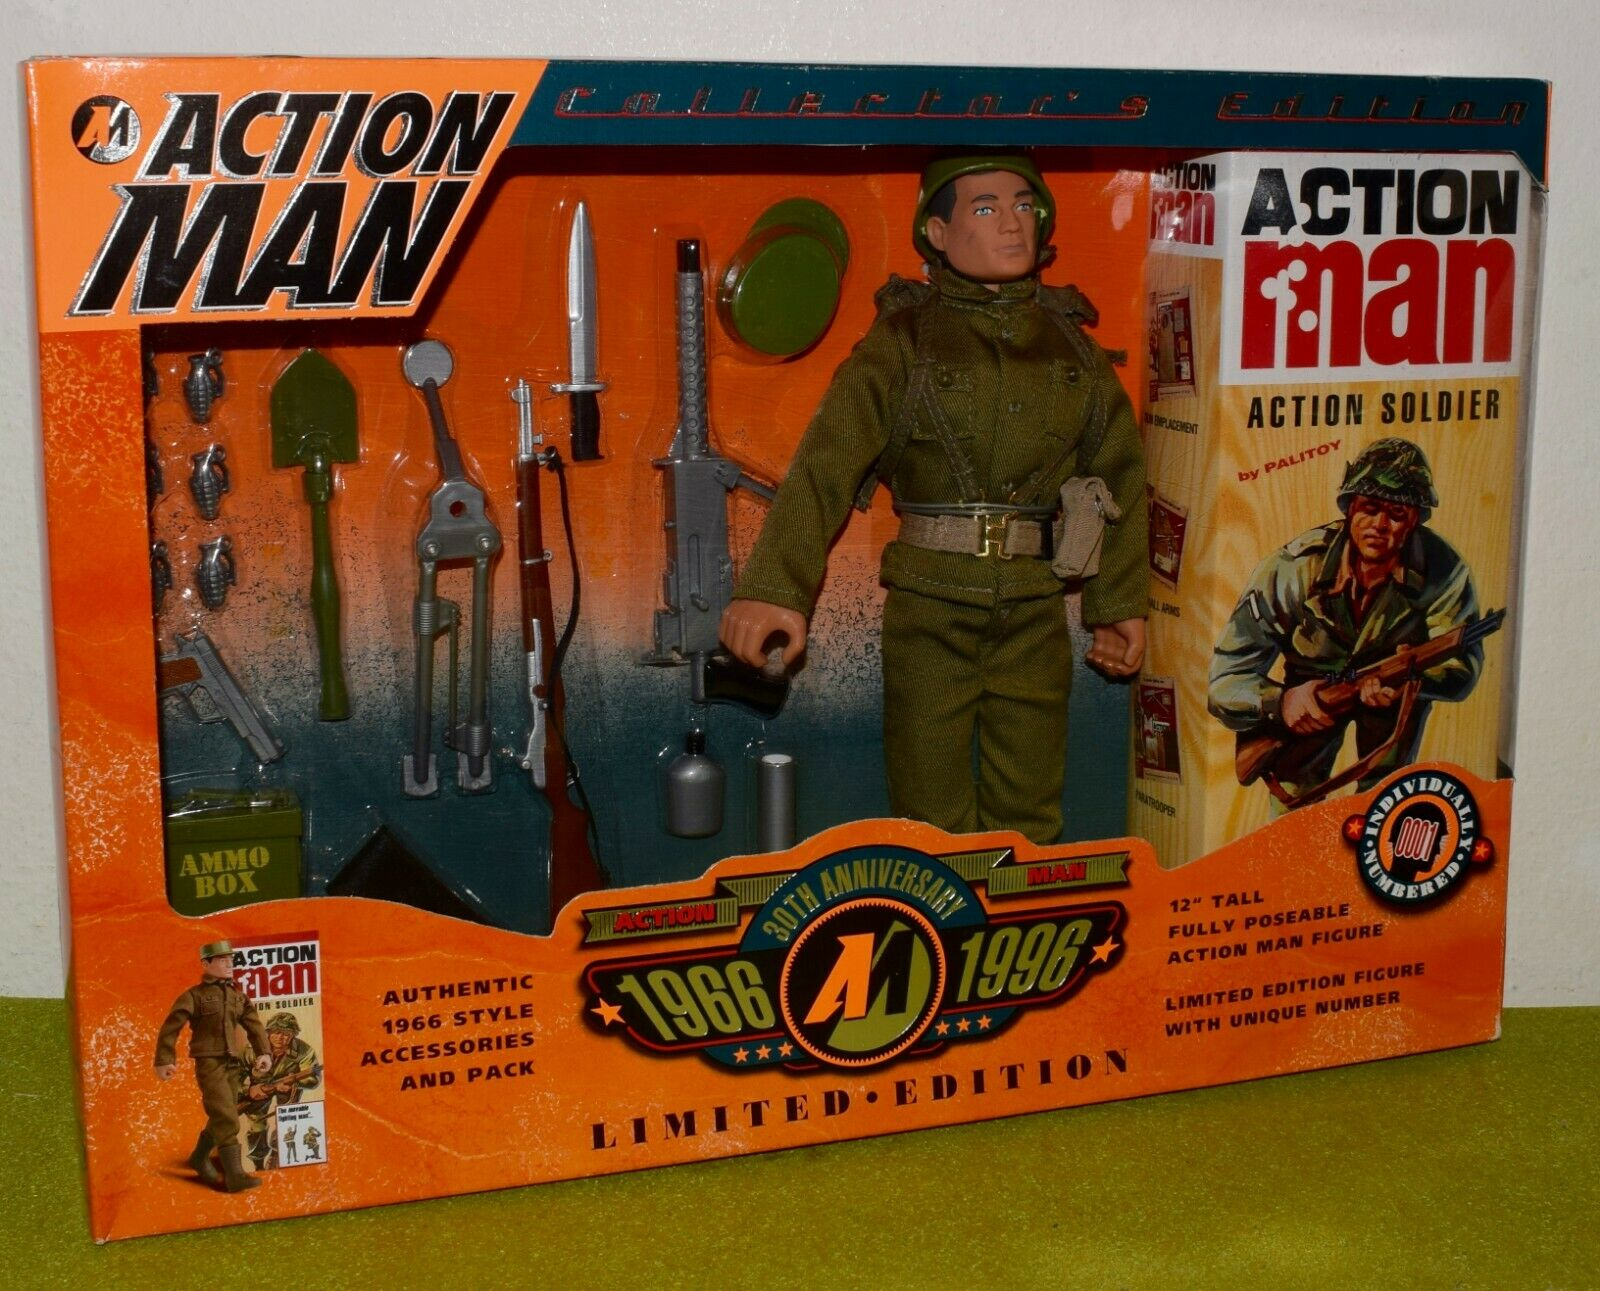 HASBRO ACTION MAN 30th ANNIVERSARY ACTION SOLDIER SOLDIER SOLDIER 1966-1996 1a5134